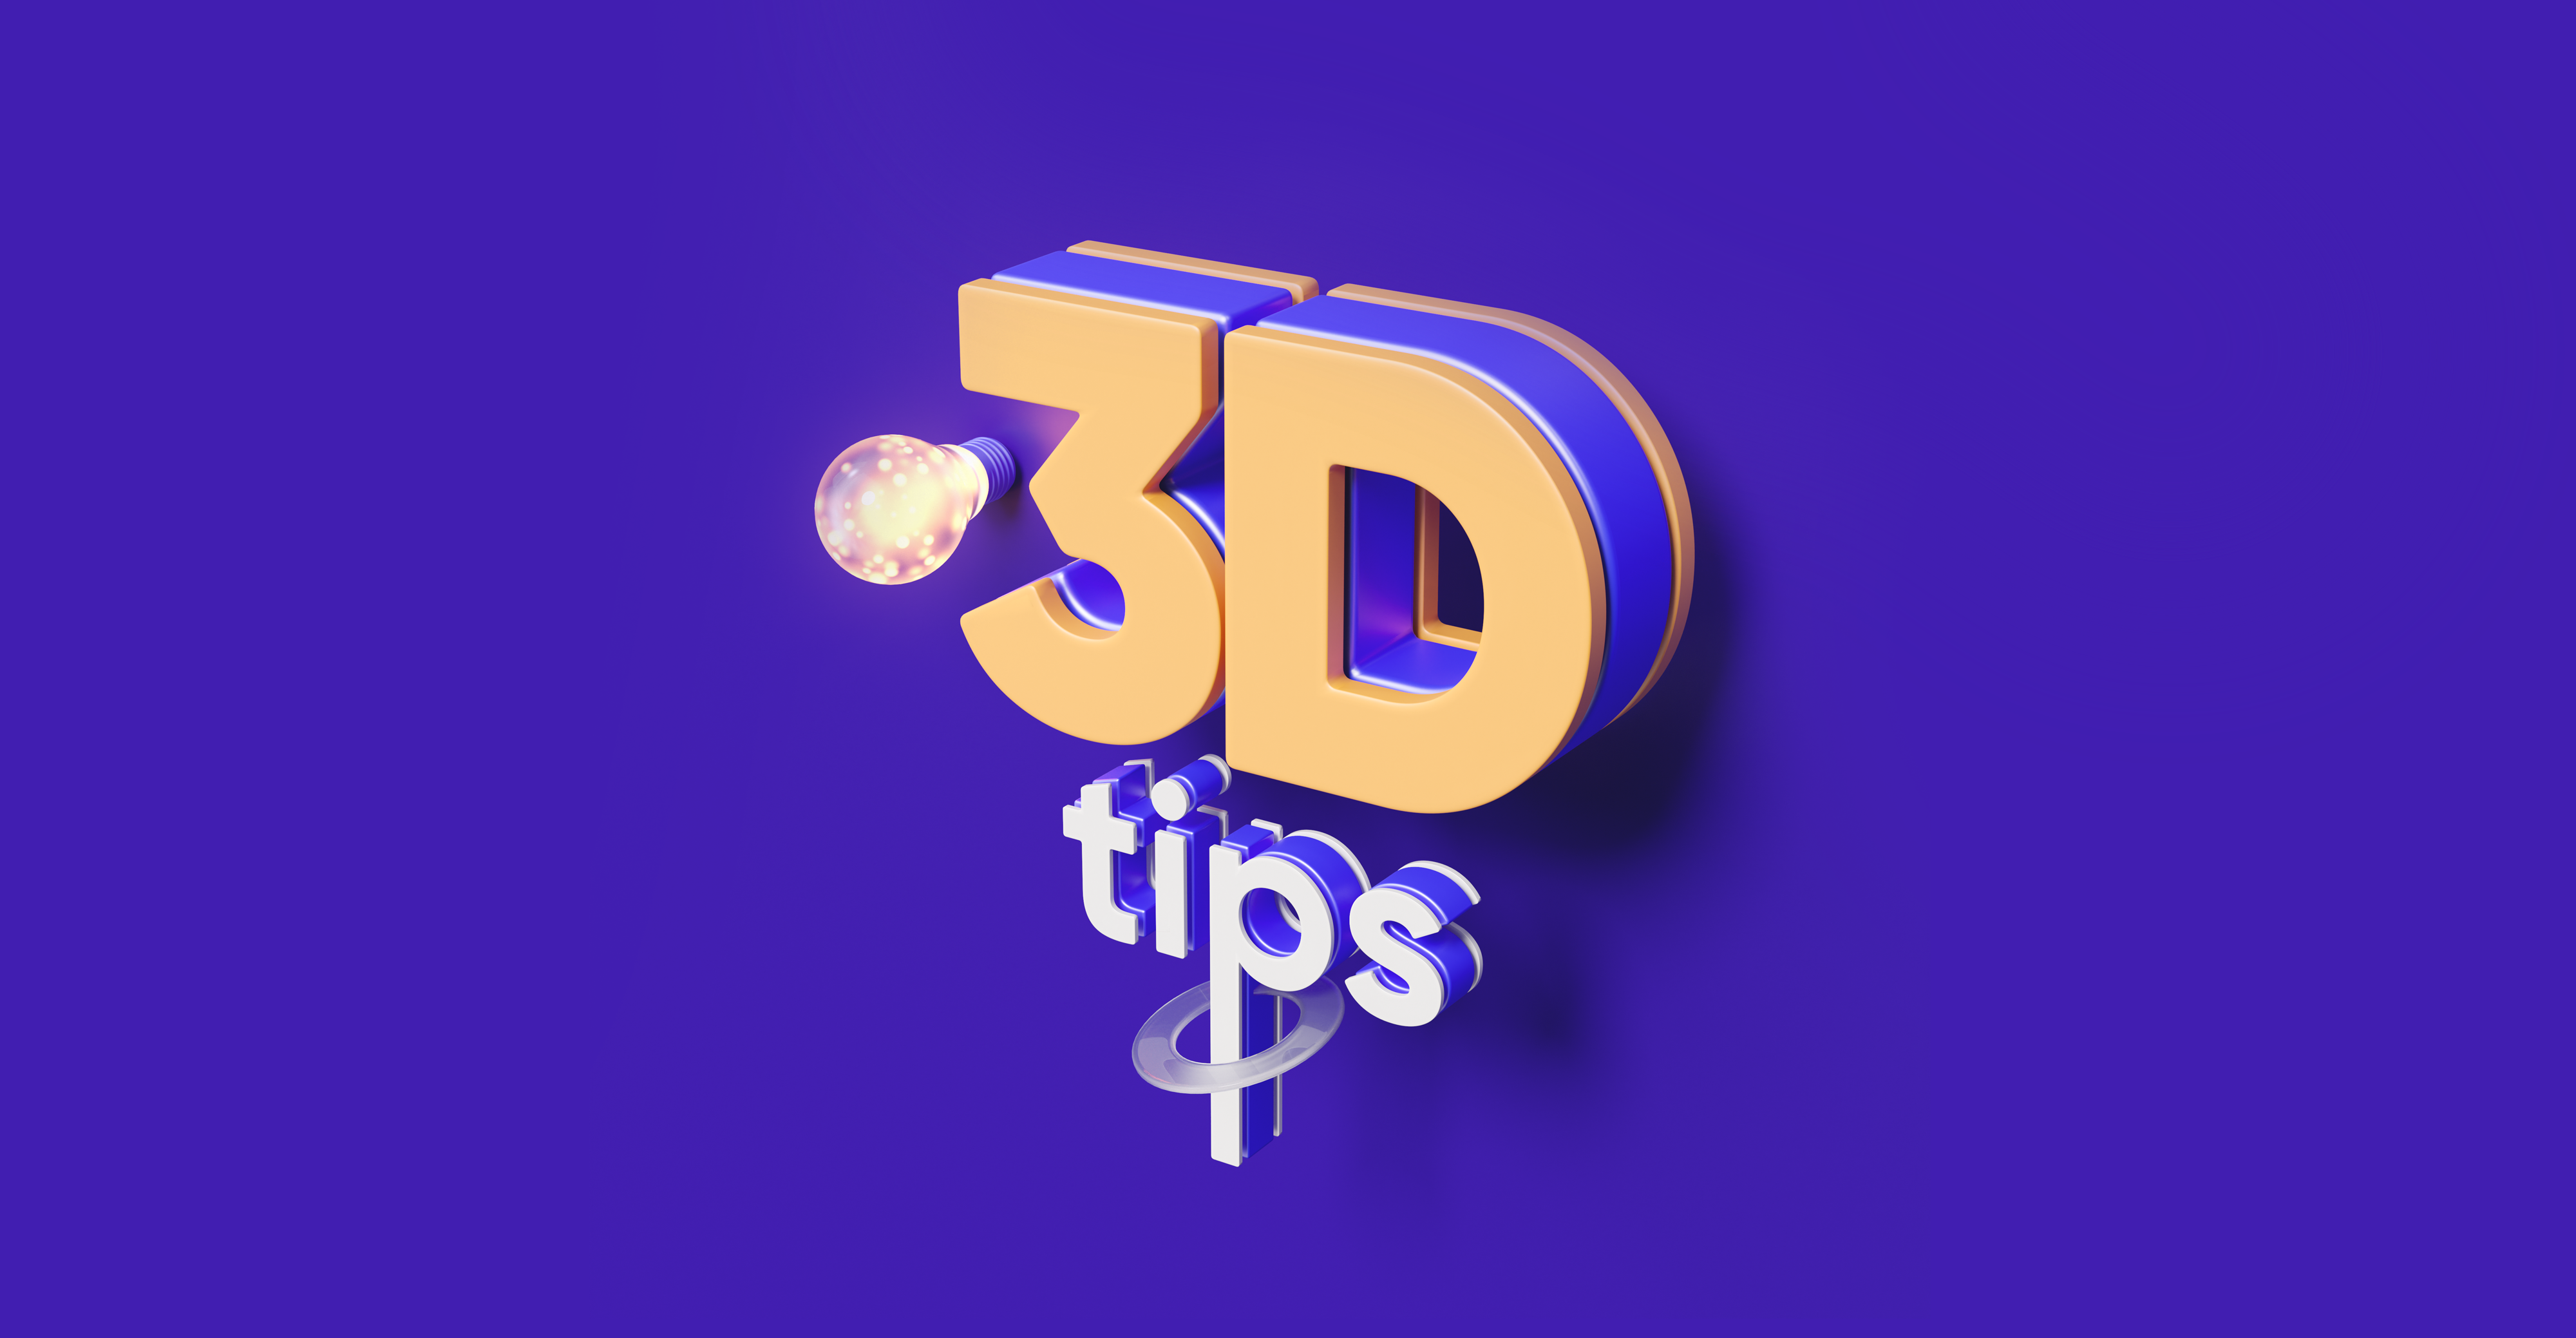 """Yellow letters """"3D tips"""" on purple background"""